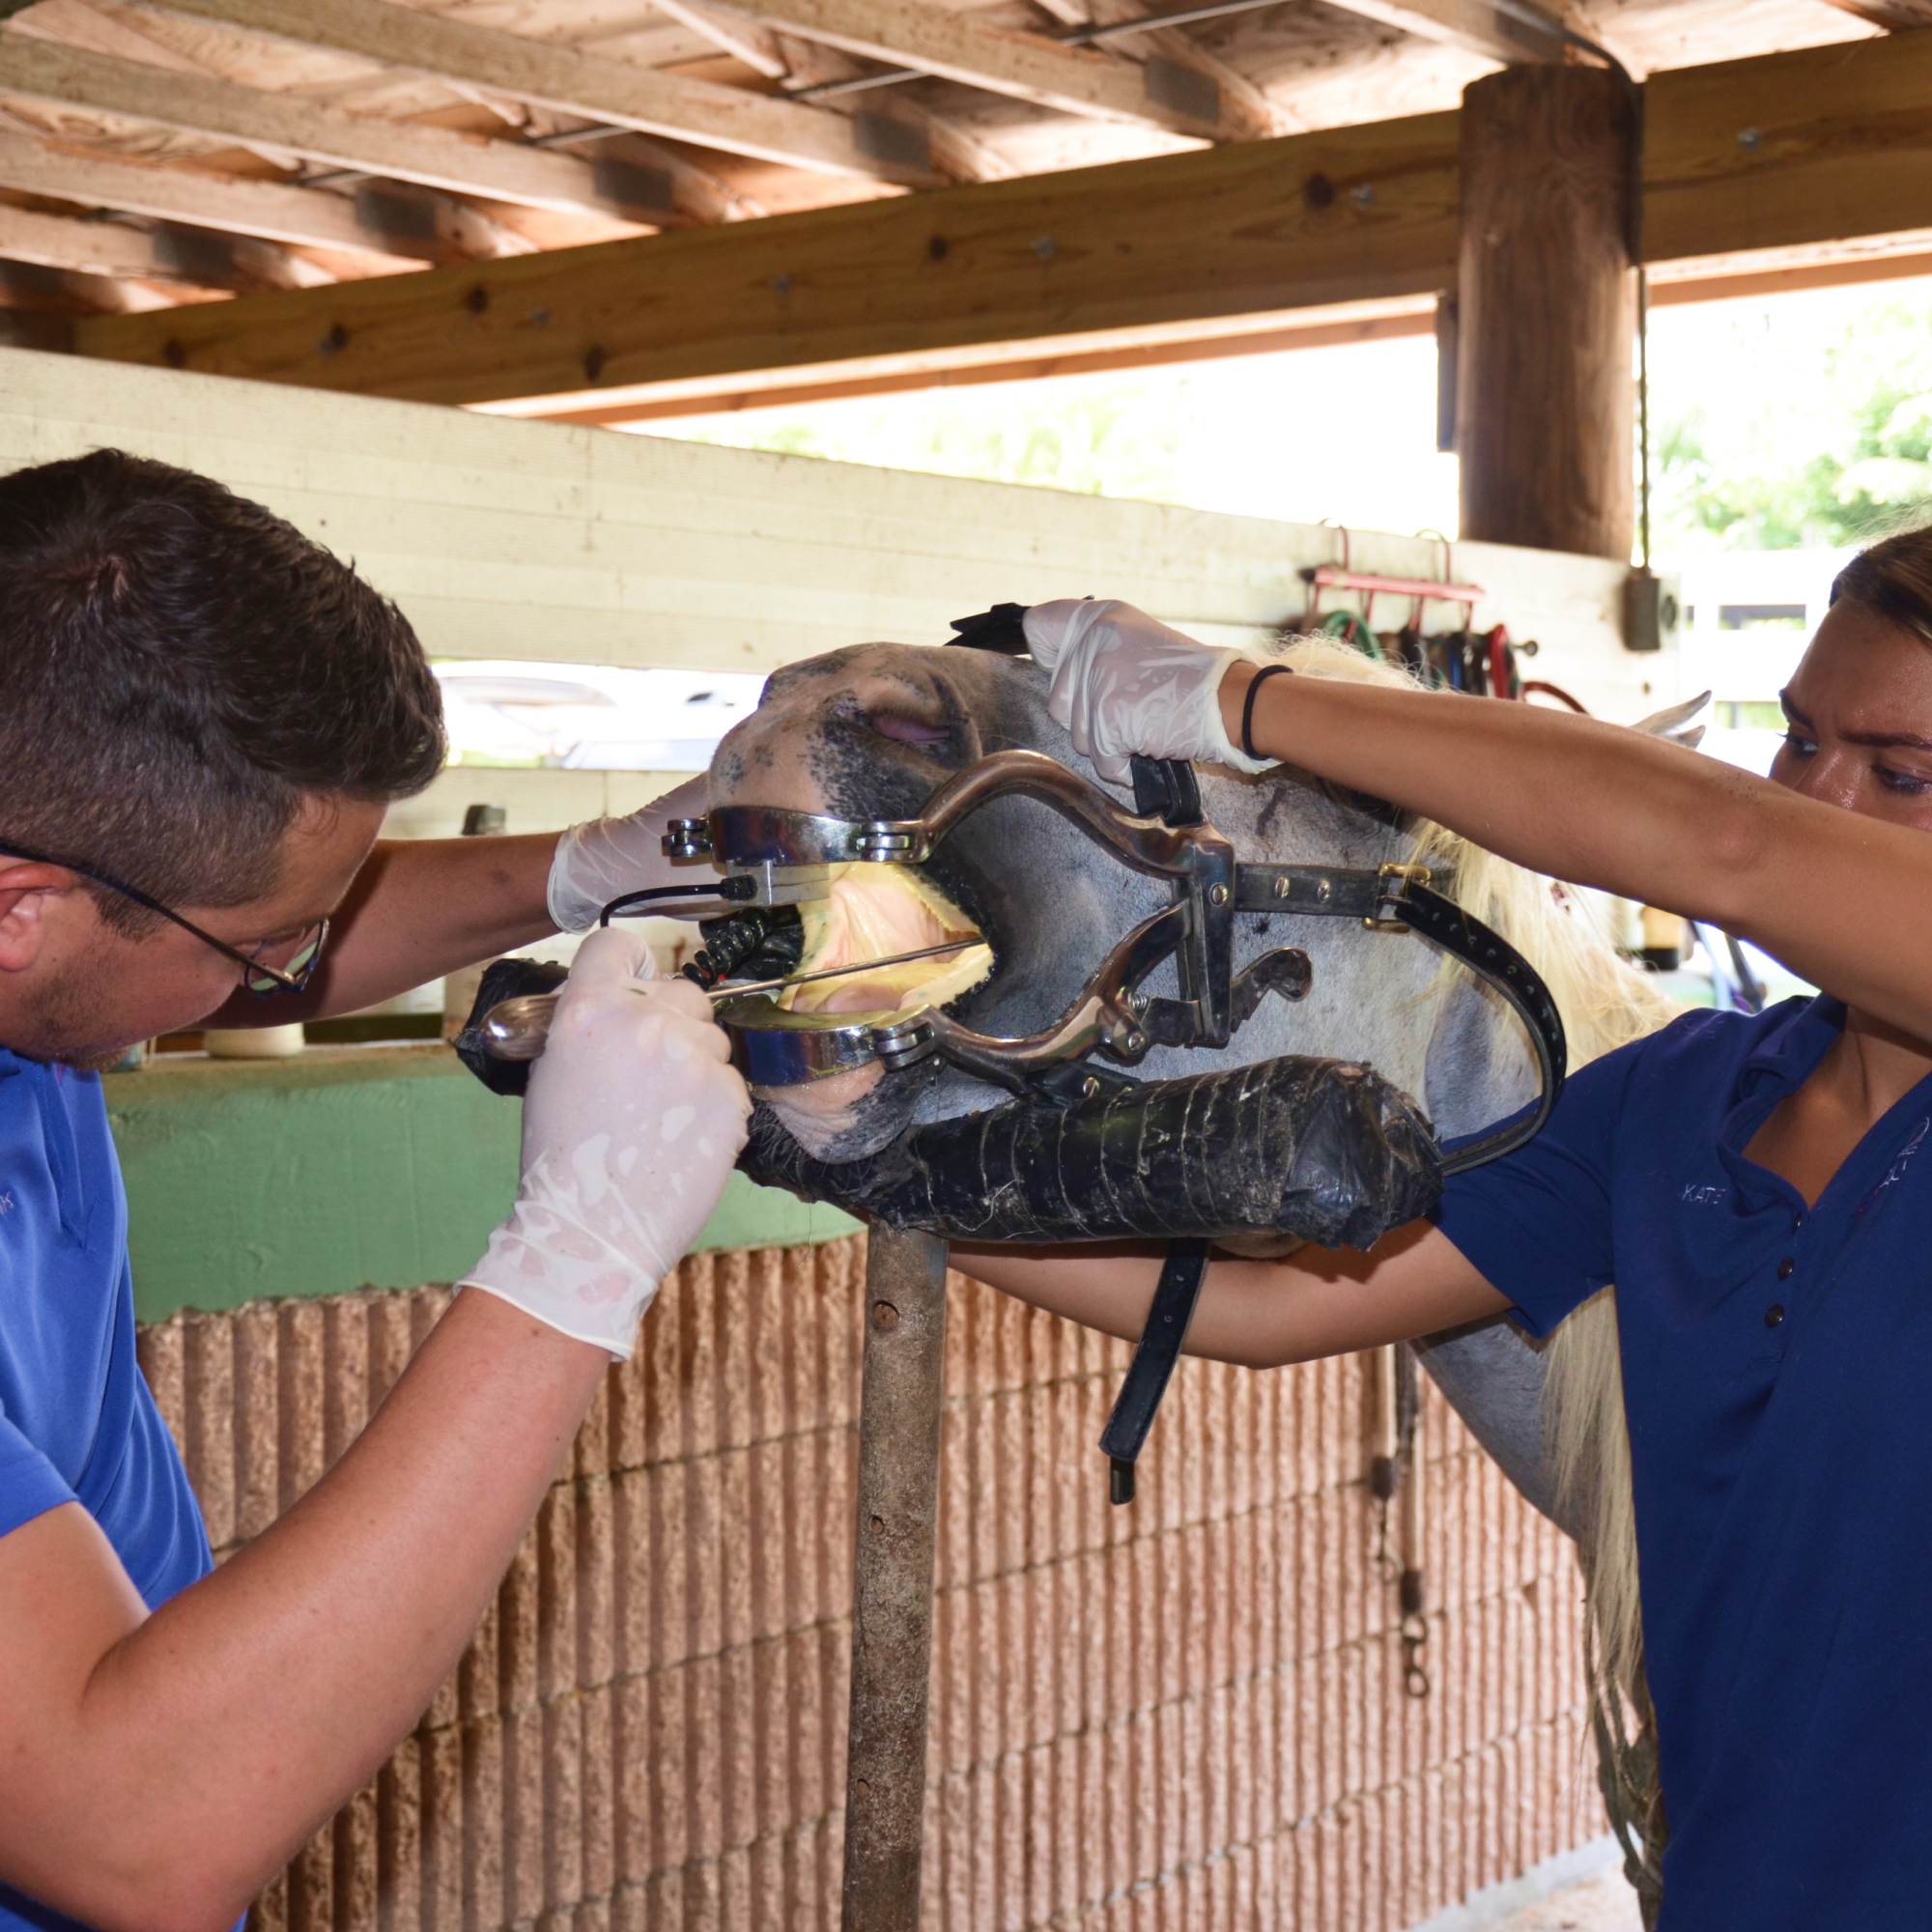 Dental Work at the South Florida Society for the Prevention of Cruelty to Animals